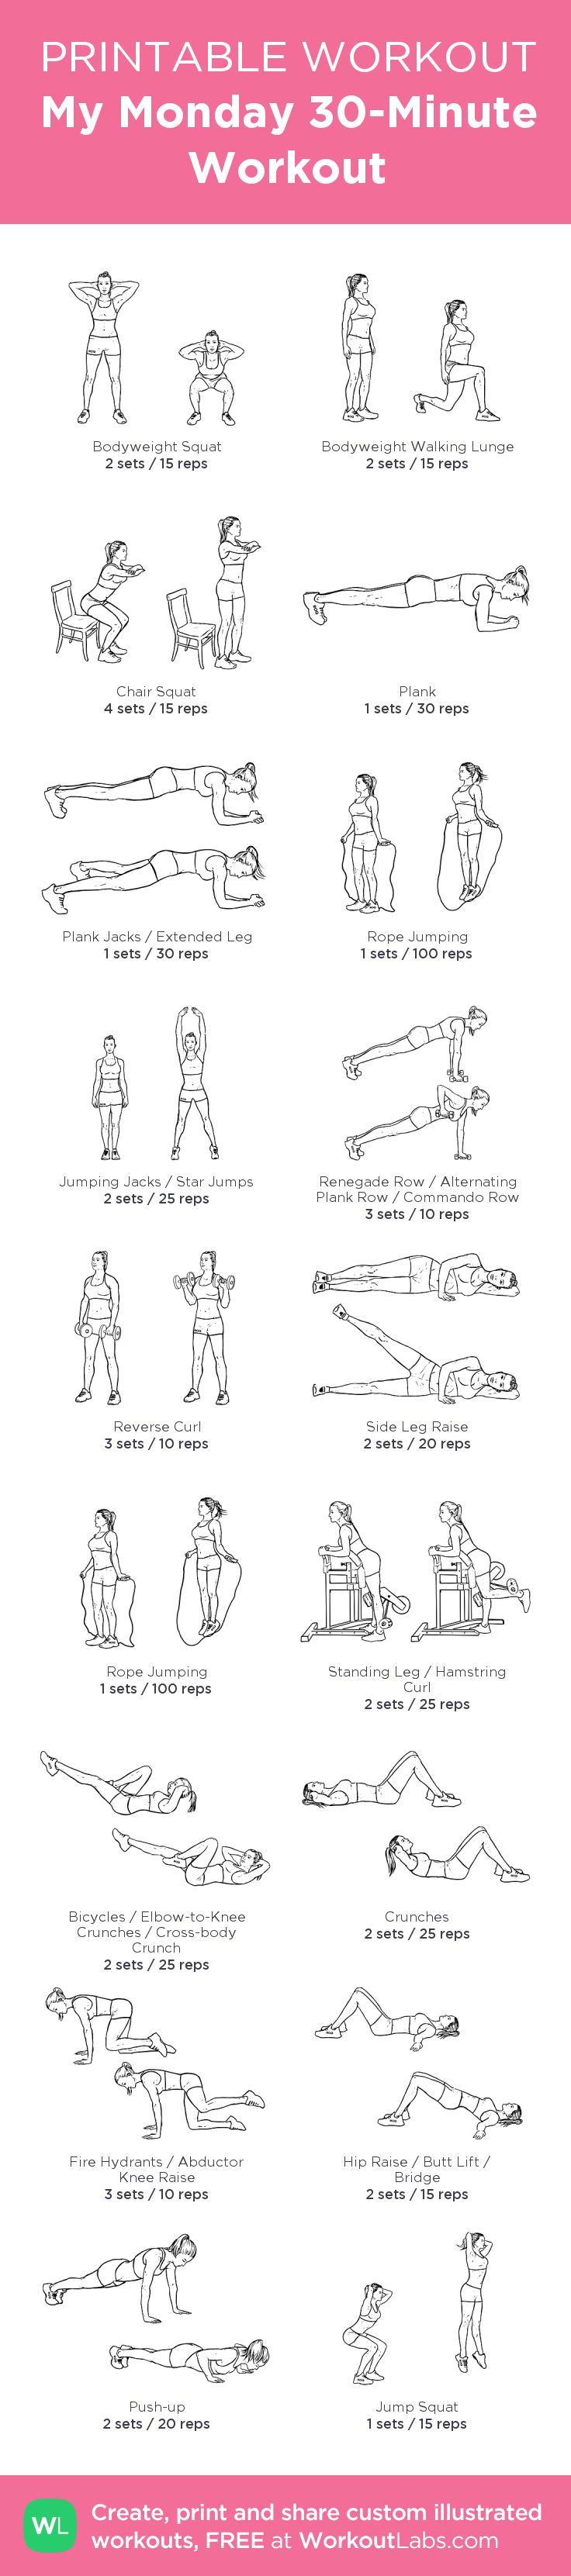 My Monday 30-Minute Workout:my visual workout created at WorkoutLabs.com • Click through to customize and download as a FREE PDF! #customworkout